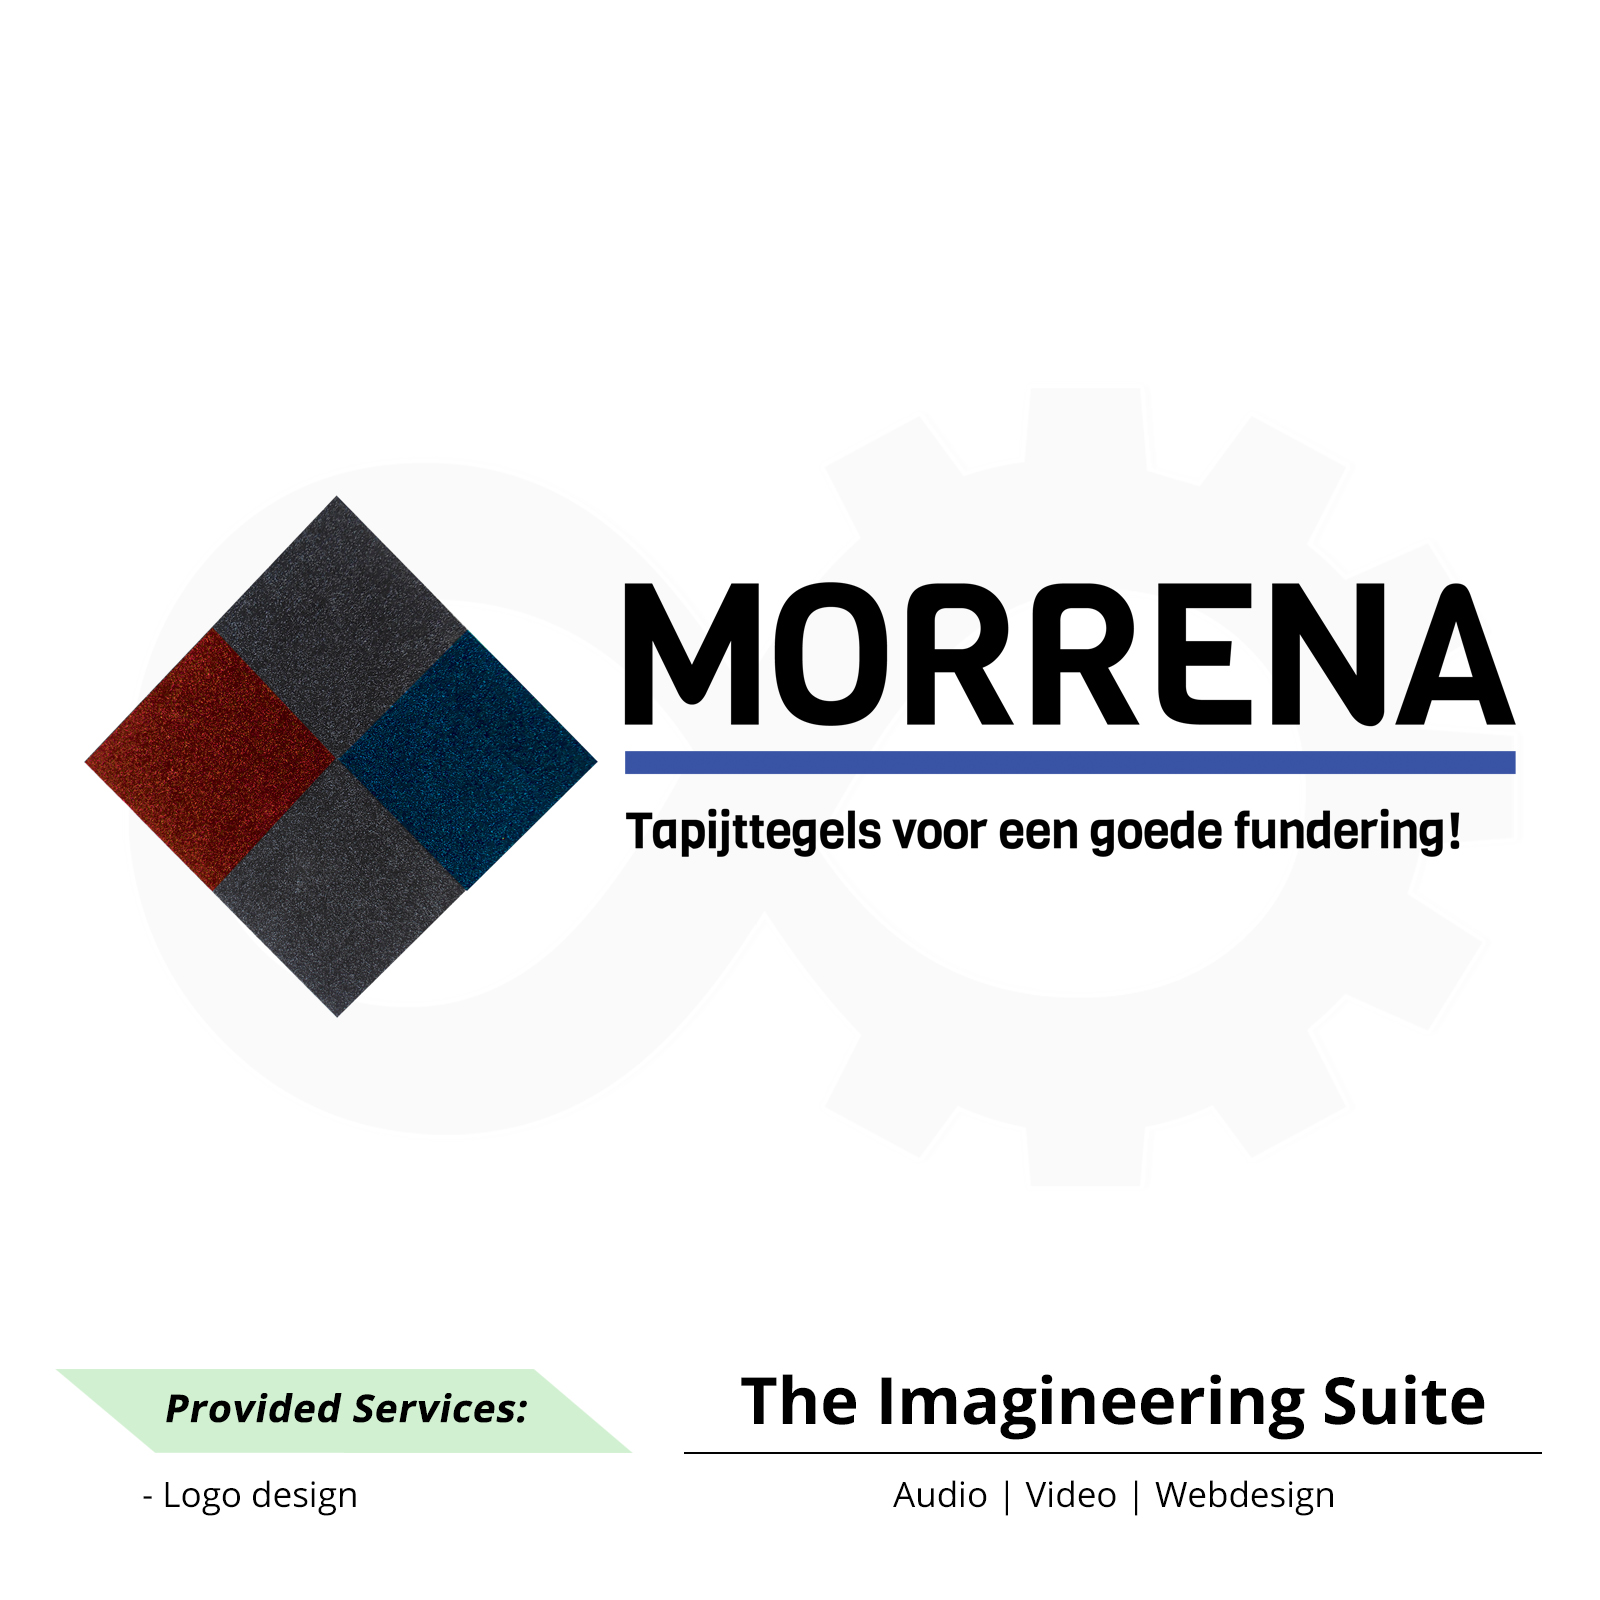 Morrena - Tapijttegels